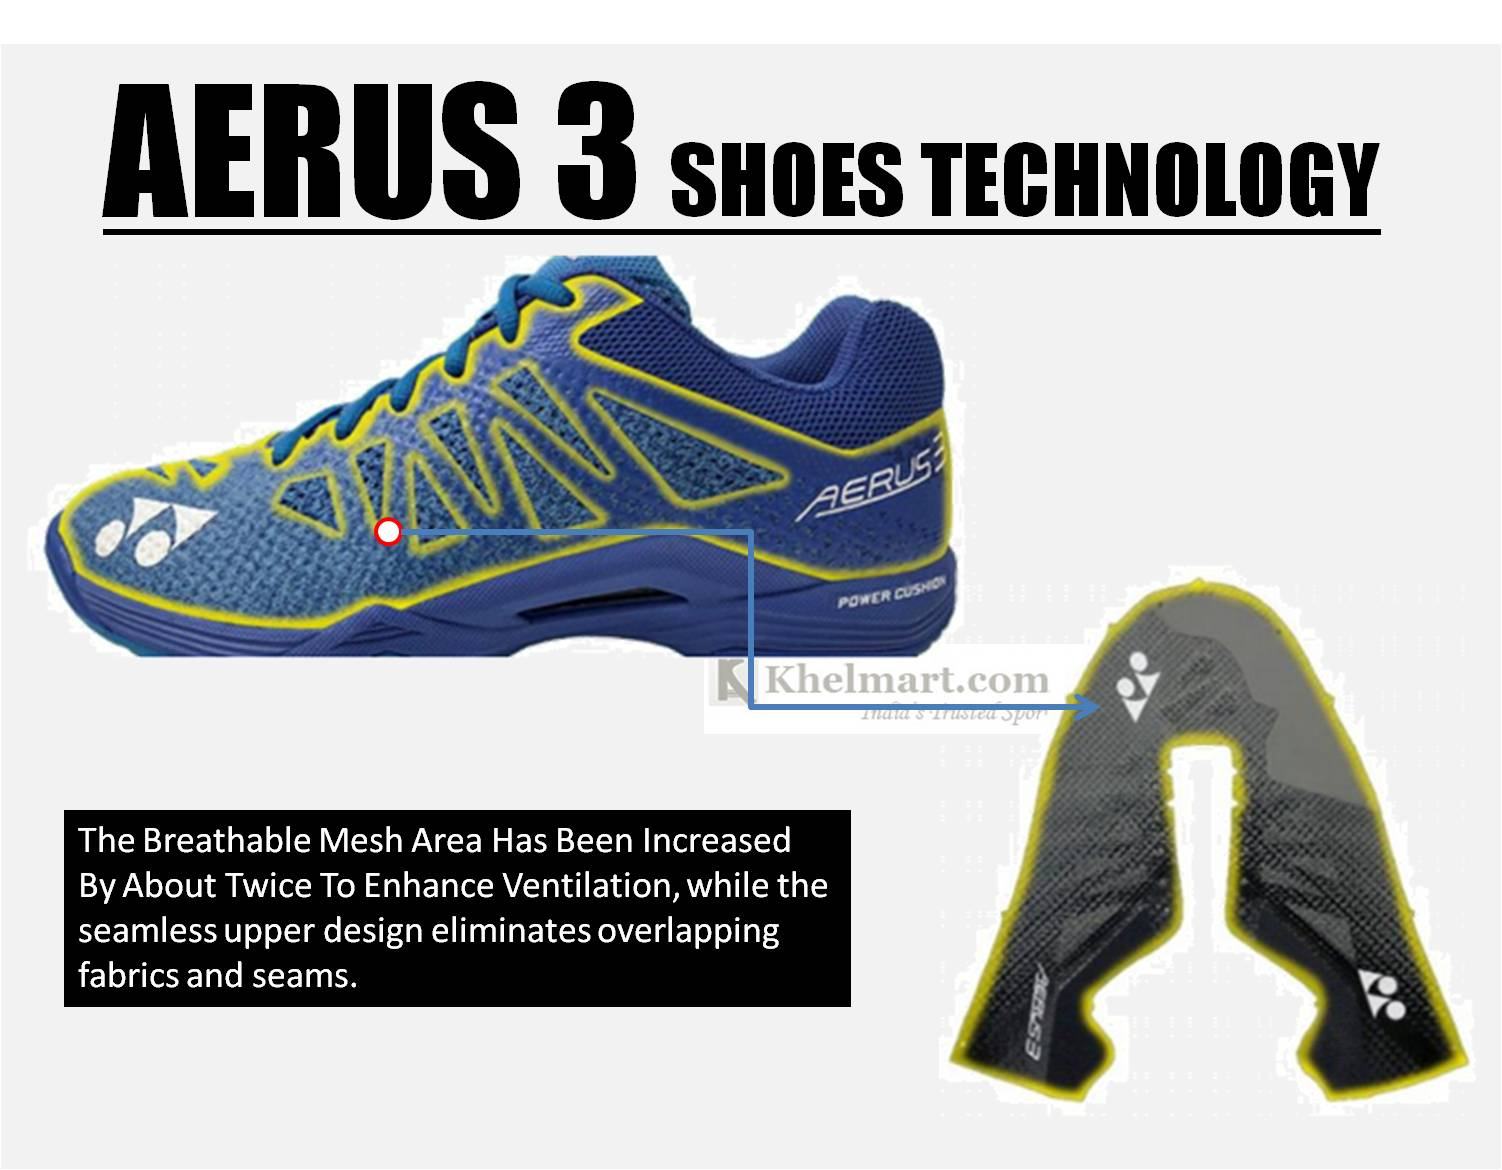 YONEX_AERUS_3_Breathable_Mesh _TECHNOLOGY.jpg